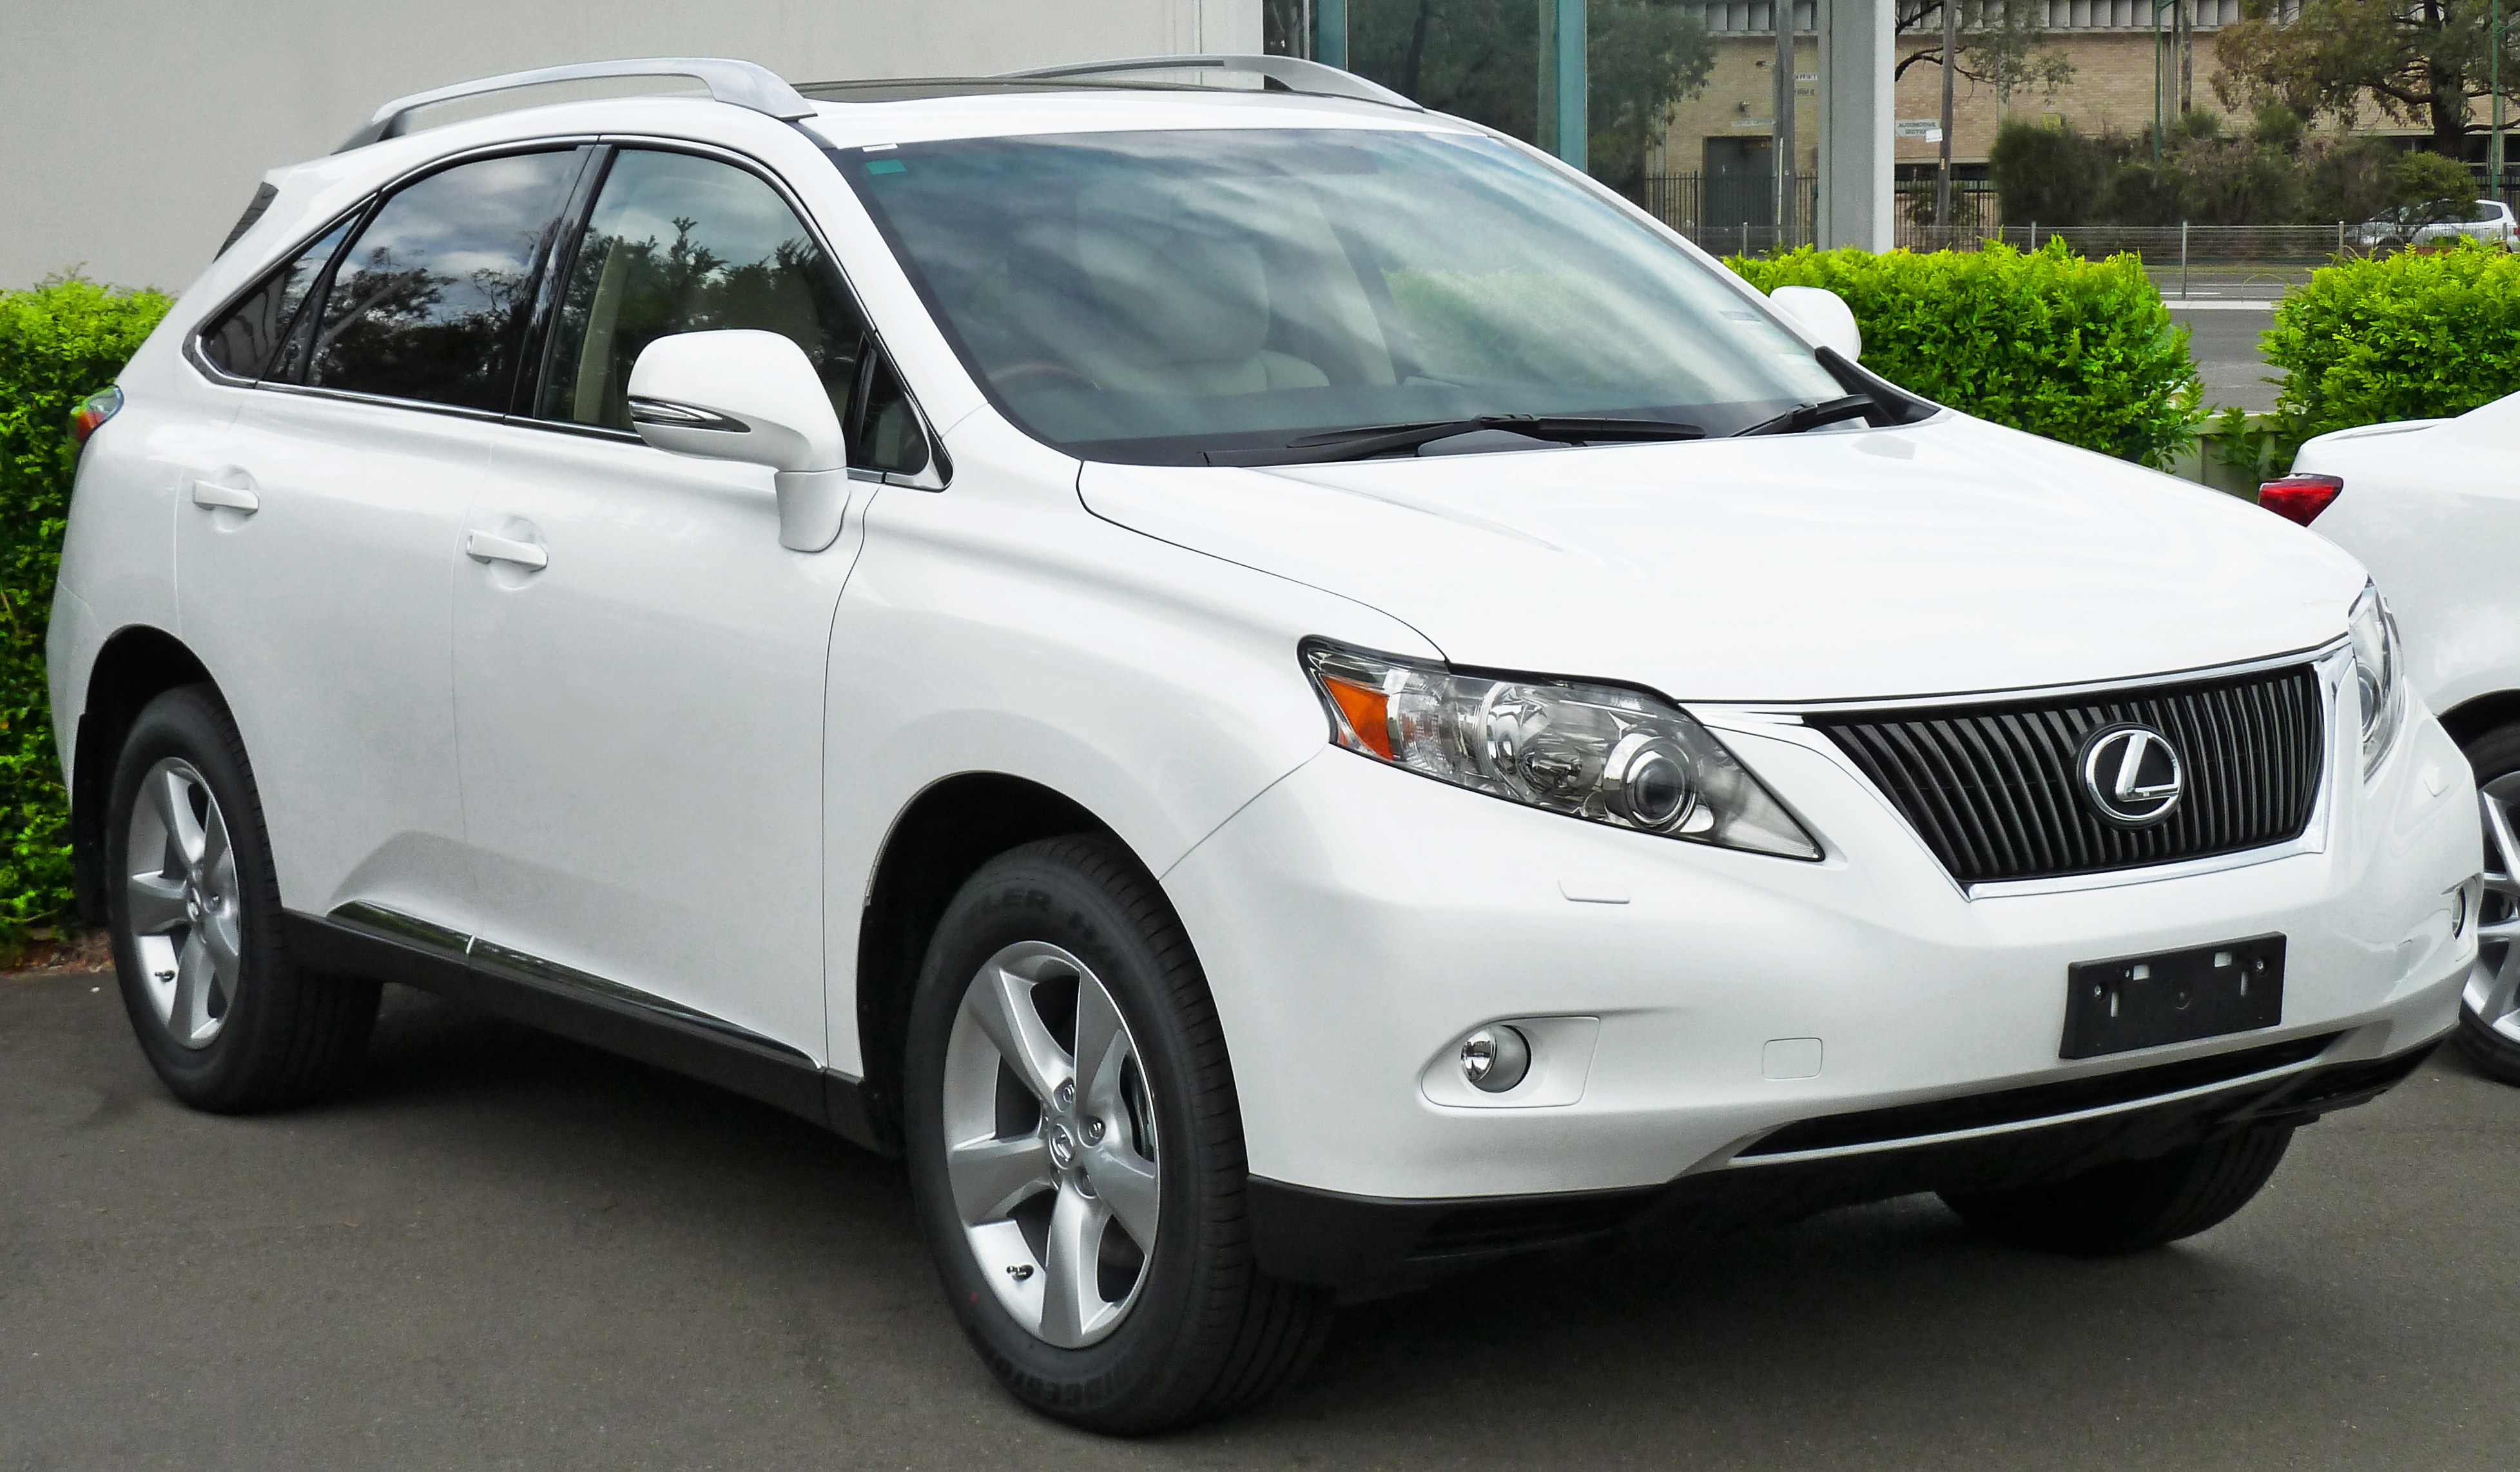 file 2010 2011 lexus rx 350 ggl15r my11 prestige wagon 2011 04 22 wikimedia commons. Black Bedroom Furniture Sets. Home Design Ideas